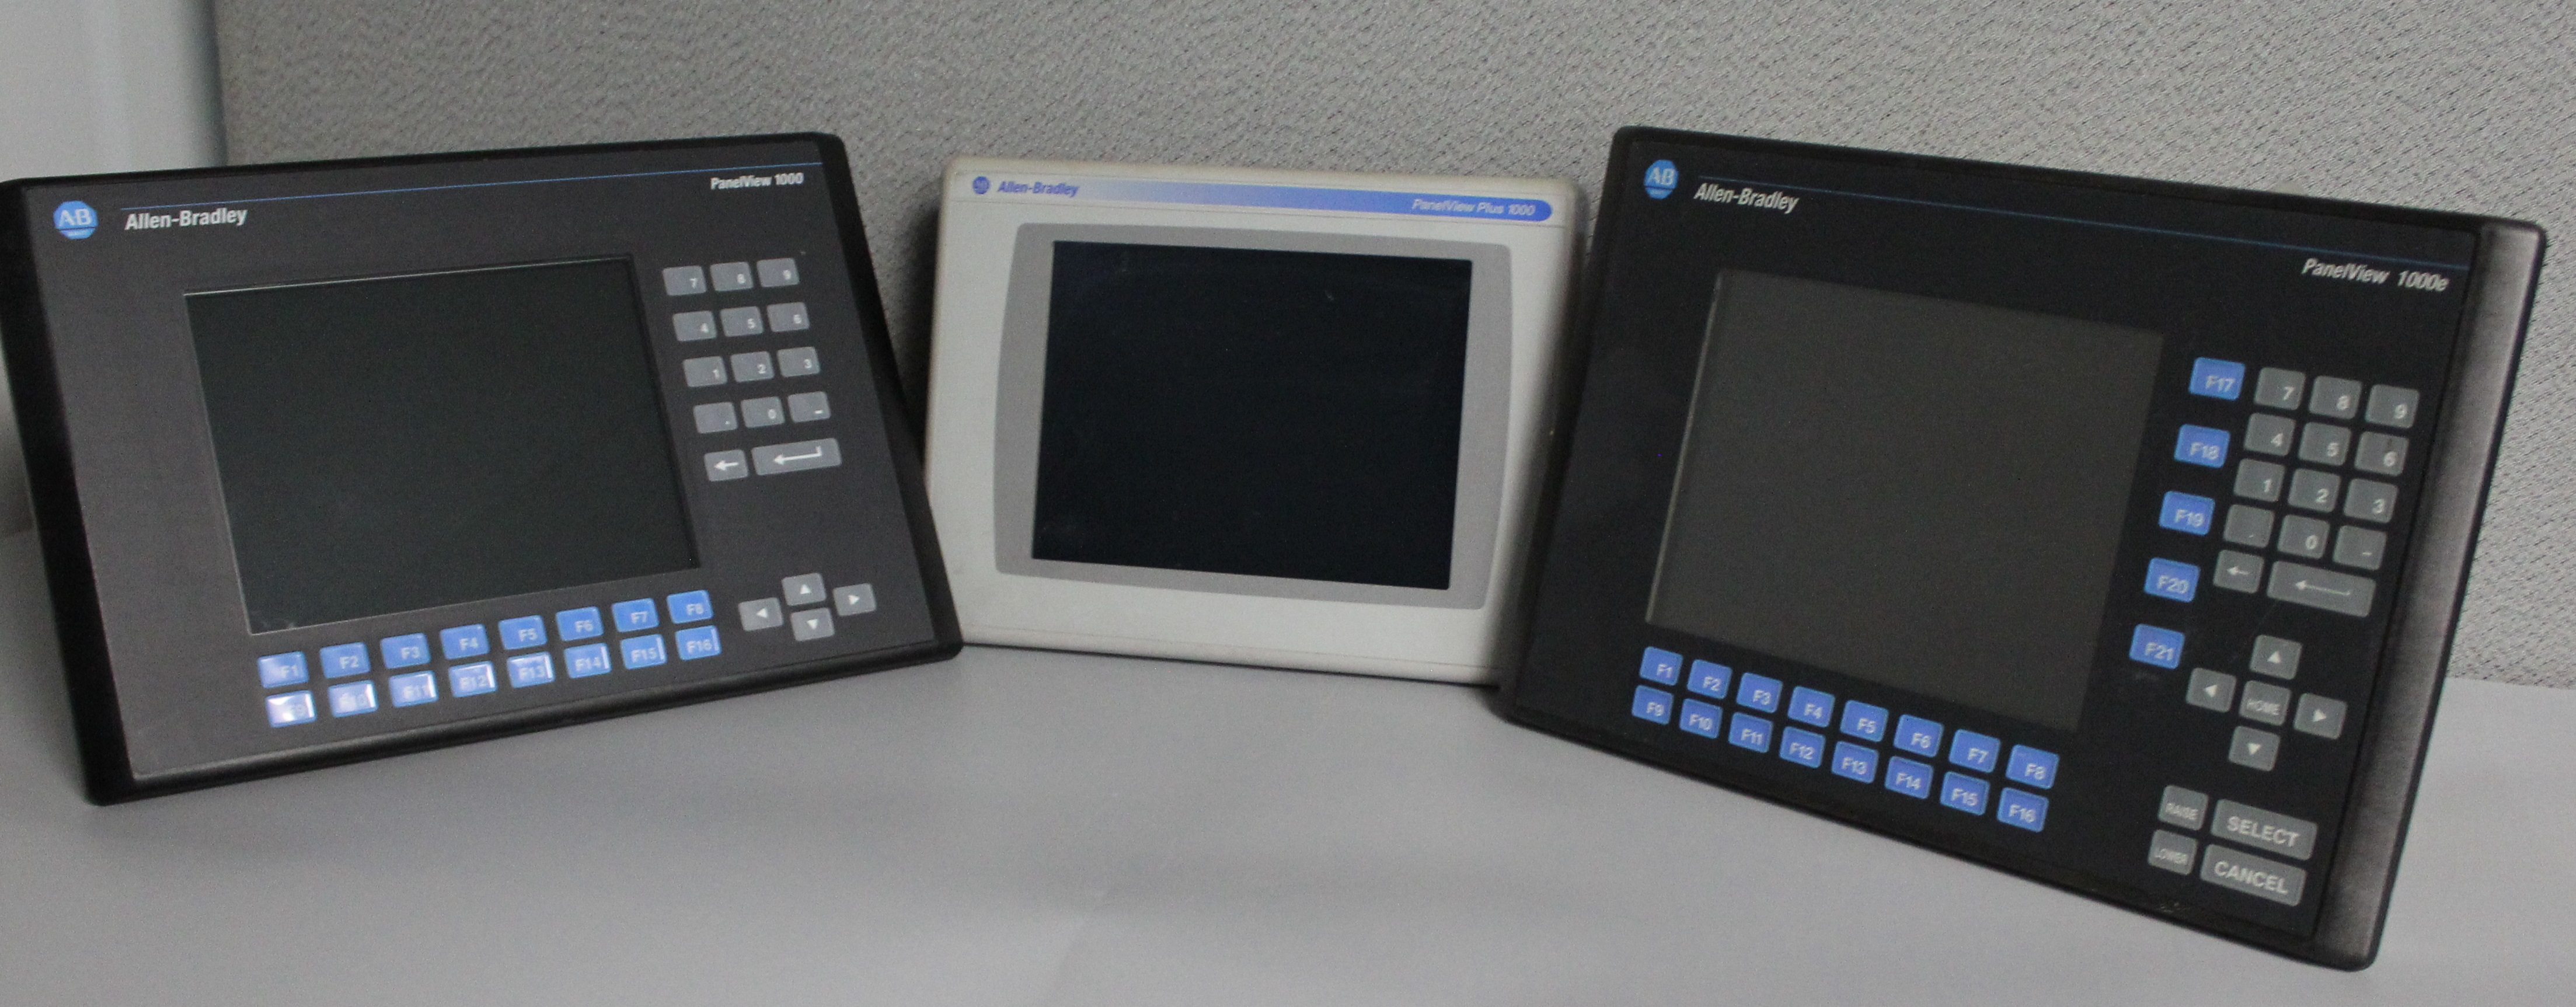 Hardware Comparison: Panelview 1000, Panelview Plus, and Panelview 1000E